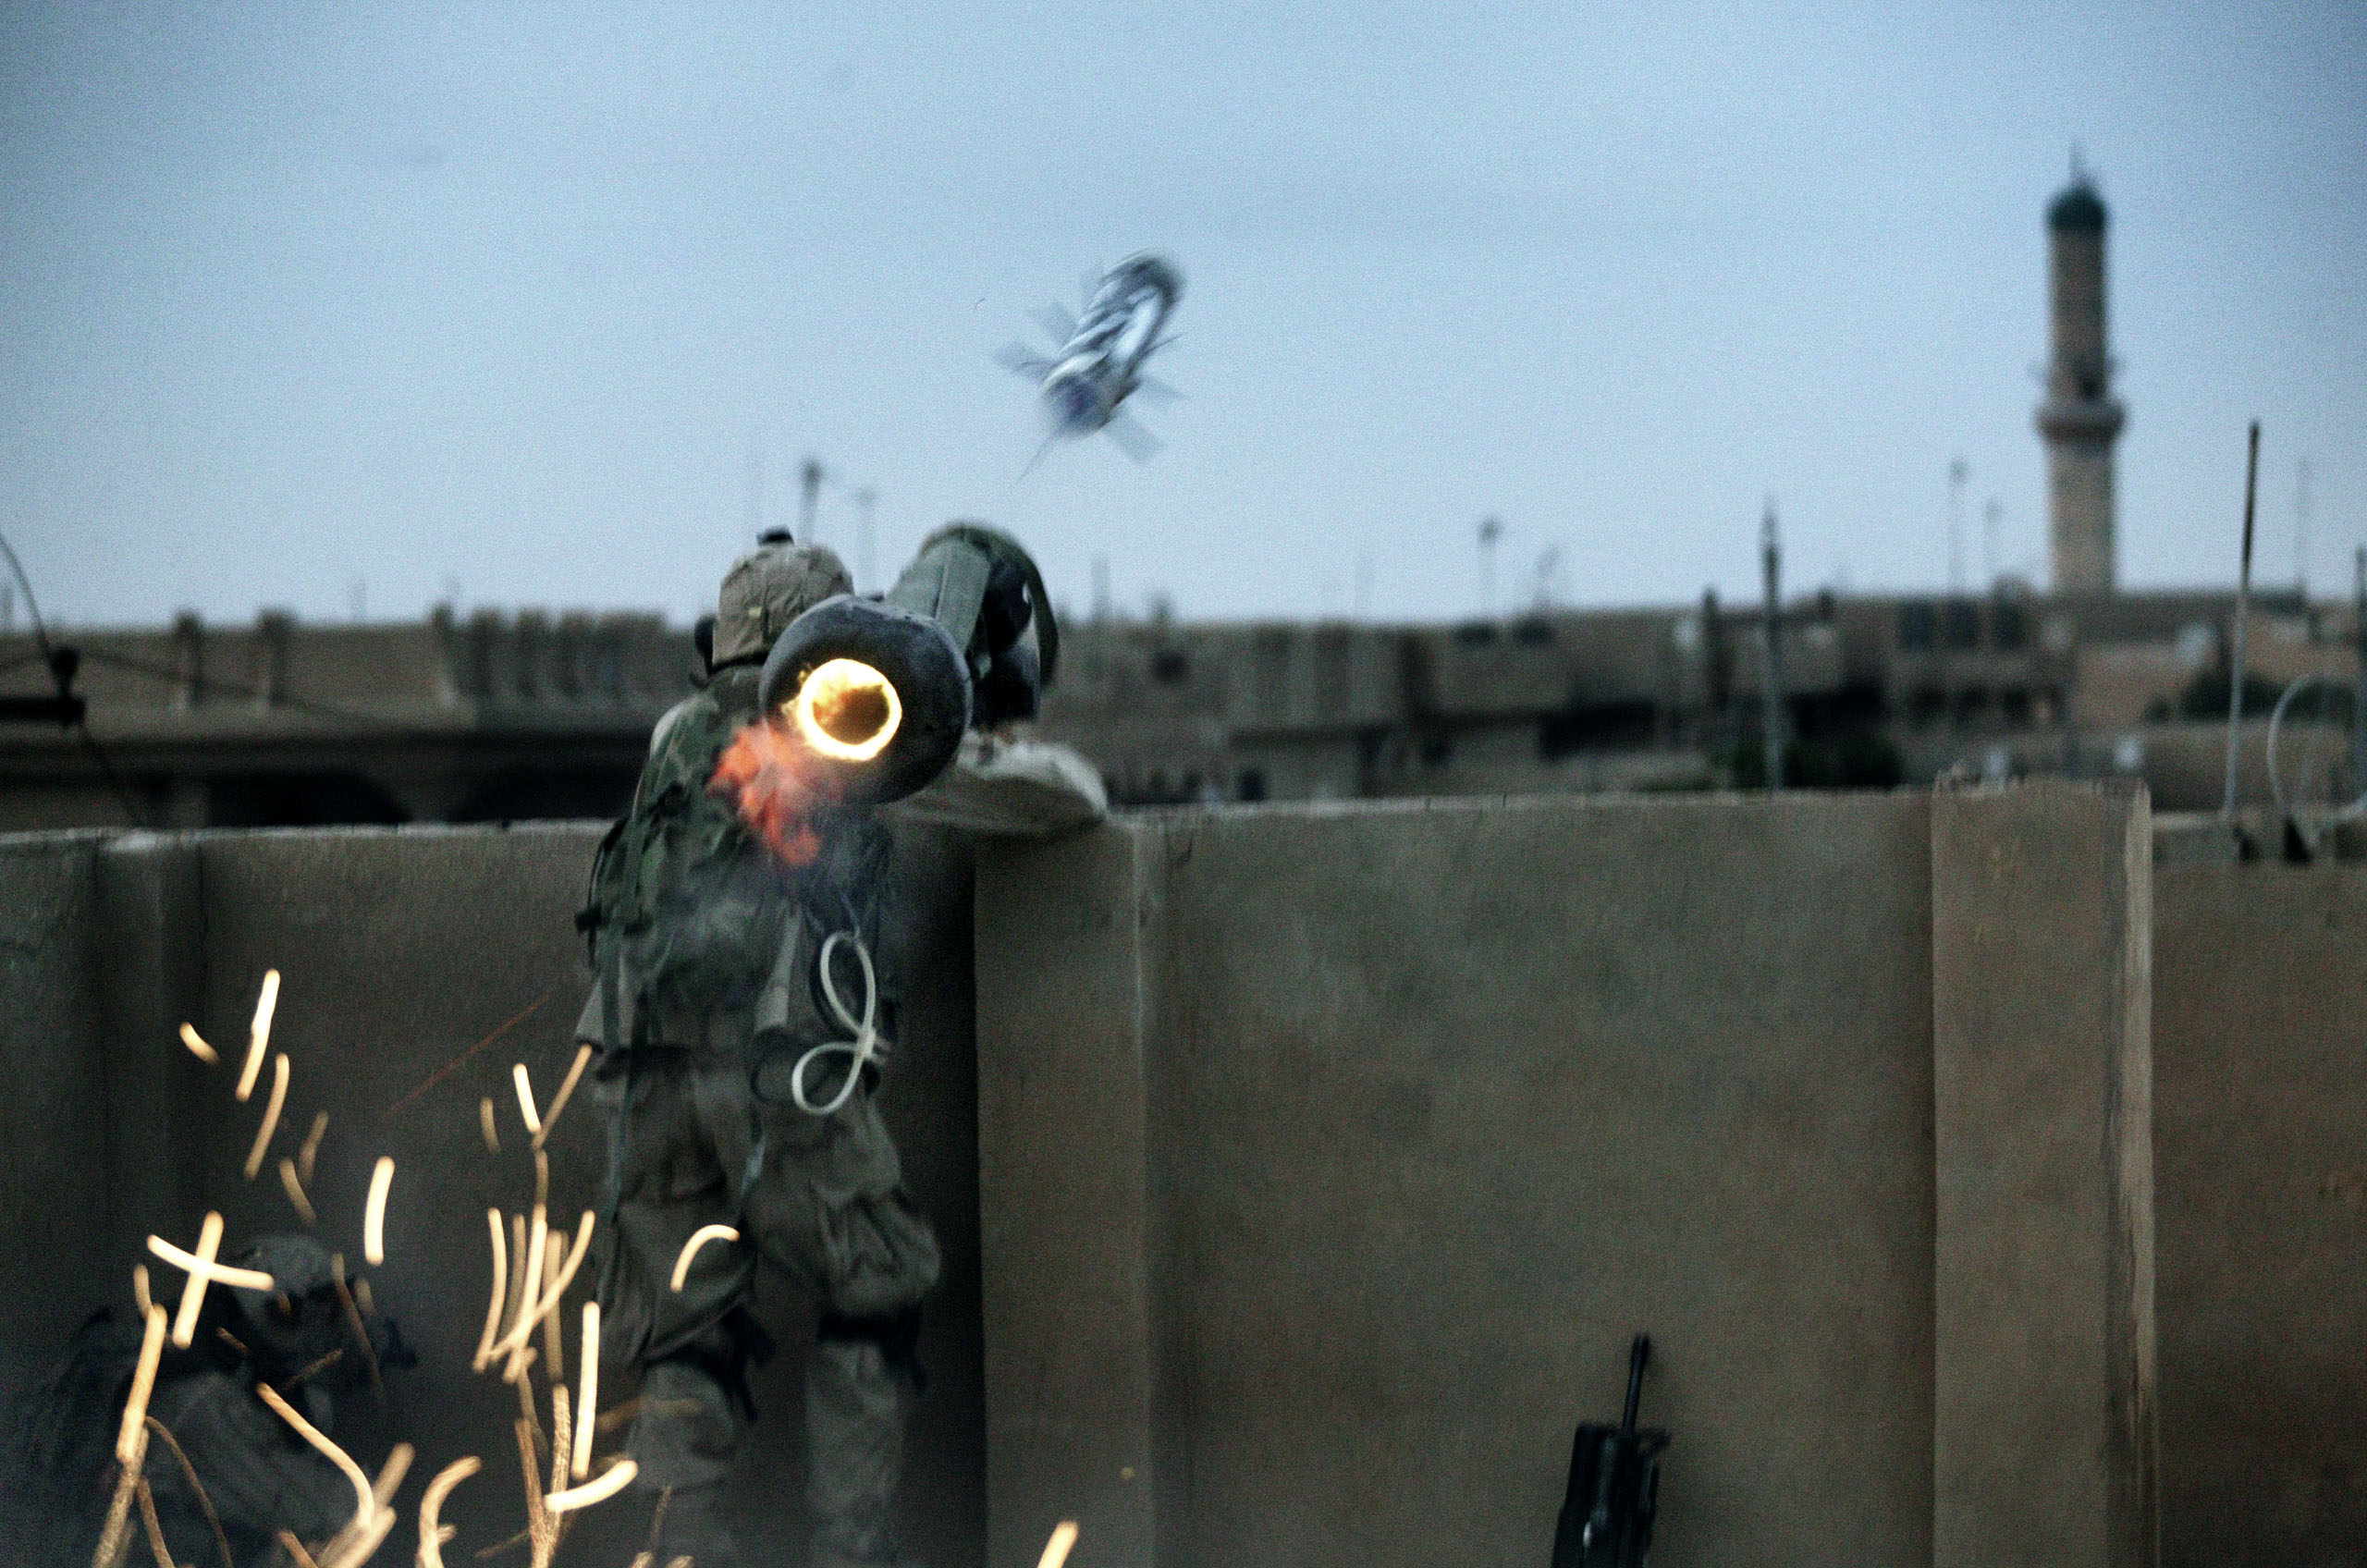 Dawn breaks in Fallujah, Iraq, as the U.S. military launched a massive offensive to retake the city from Sunni insurgents. A soldier with the Army Task Force 2-2's Alpha Company, 3rd Platoon, fires a rocket at insurgent positions from a makeshift rooftop, Nov, 9, 2004.